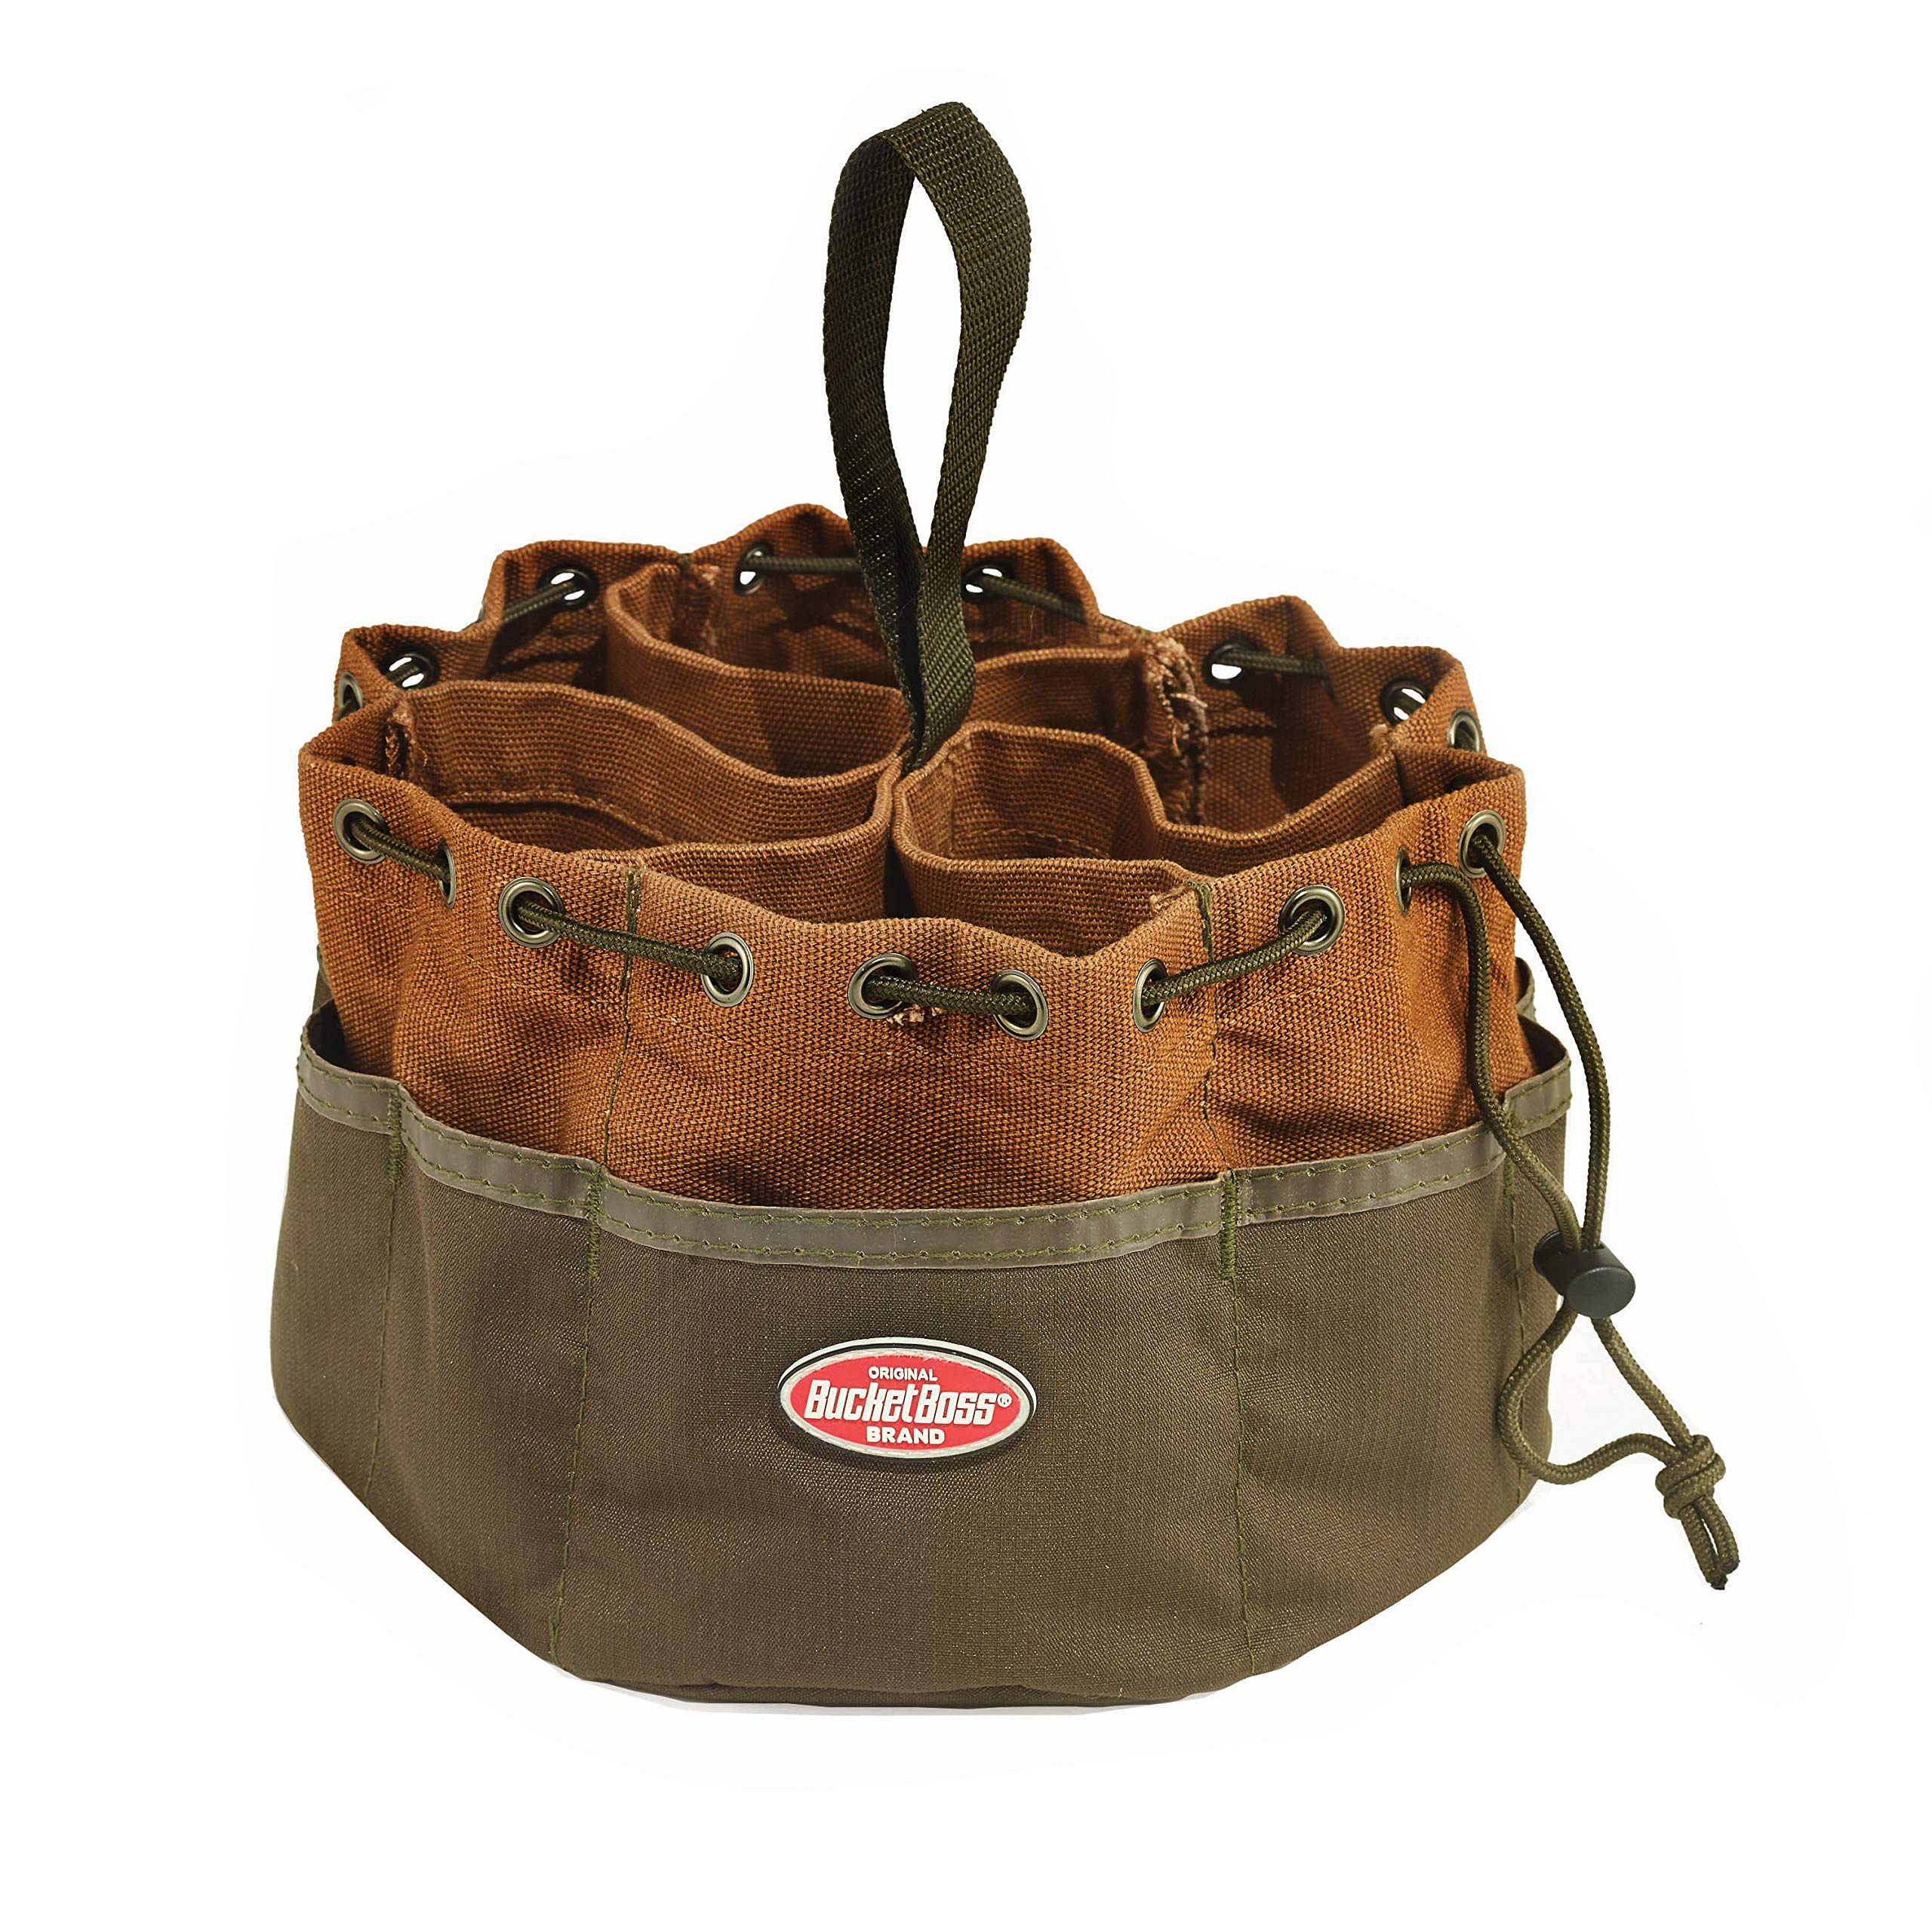 Bucket Boss Parachute Bag Small Parts Bag in Brown, 25001 by Bucket Boss